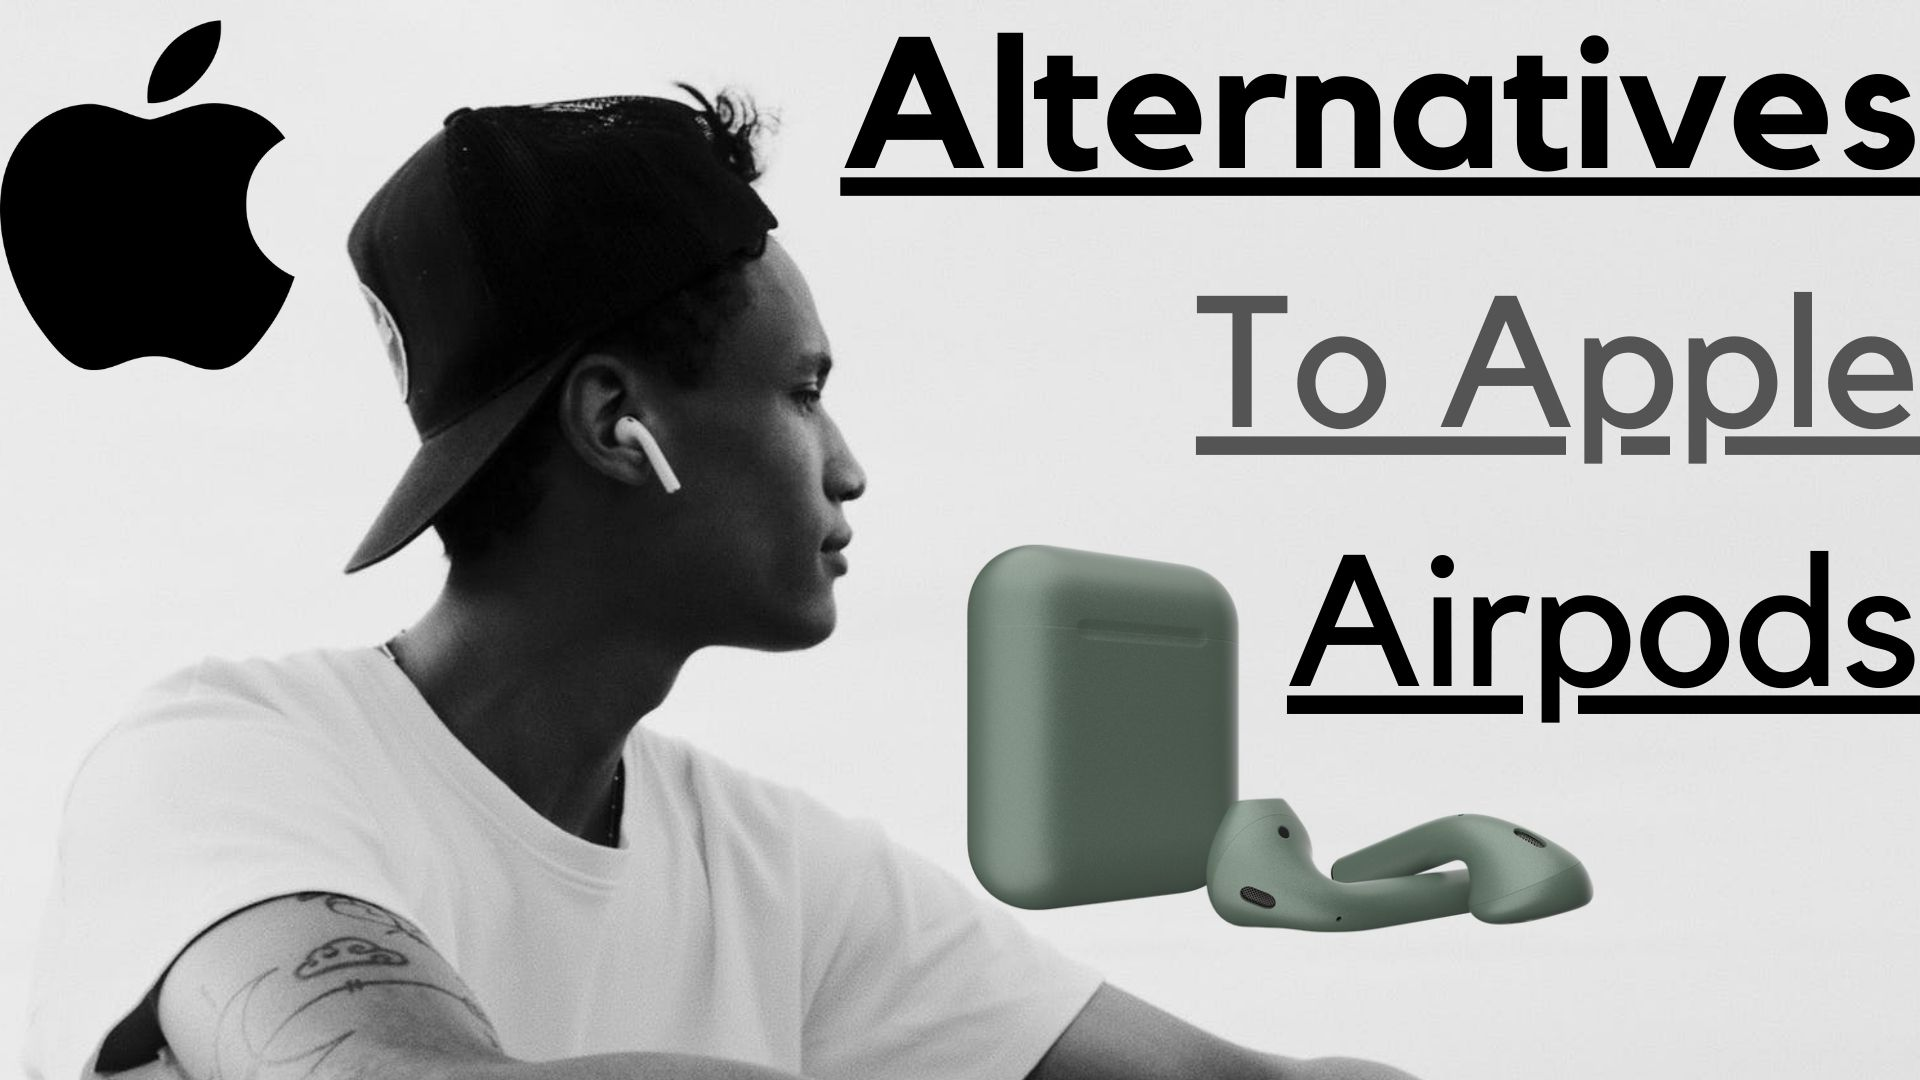 Alternatives To Apple Airpods